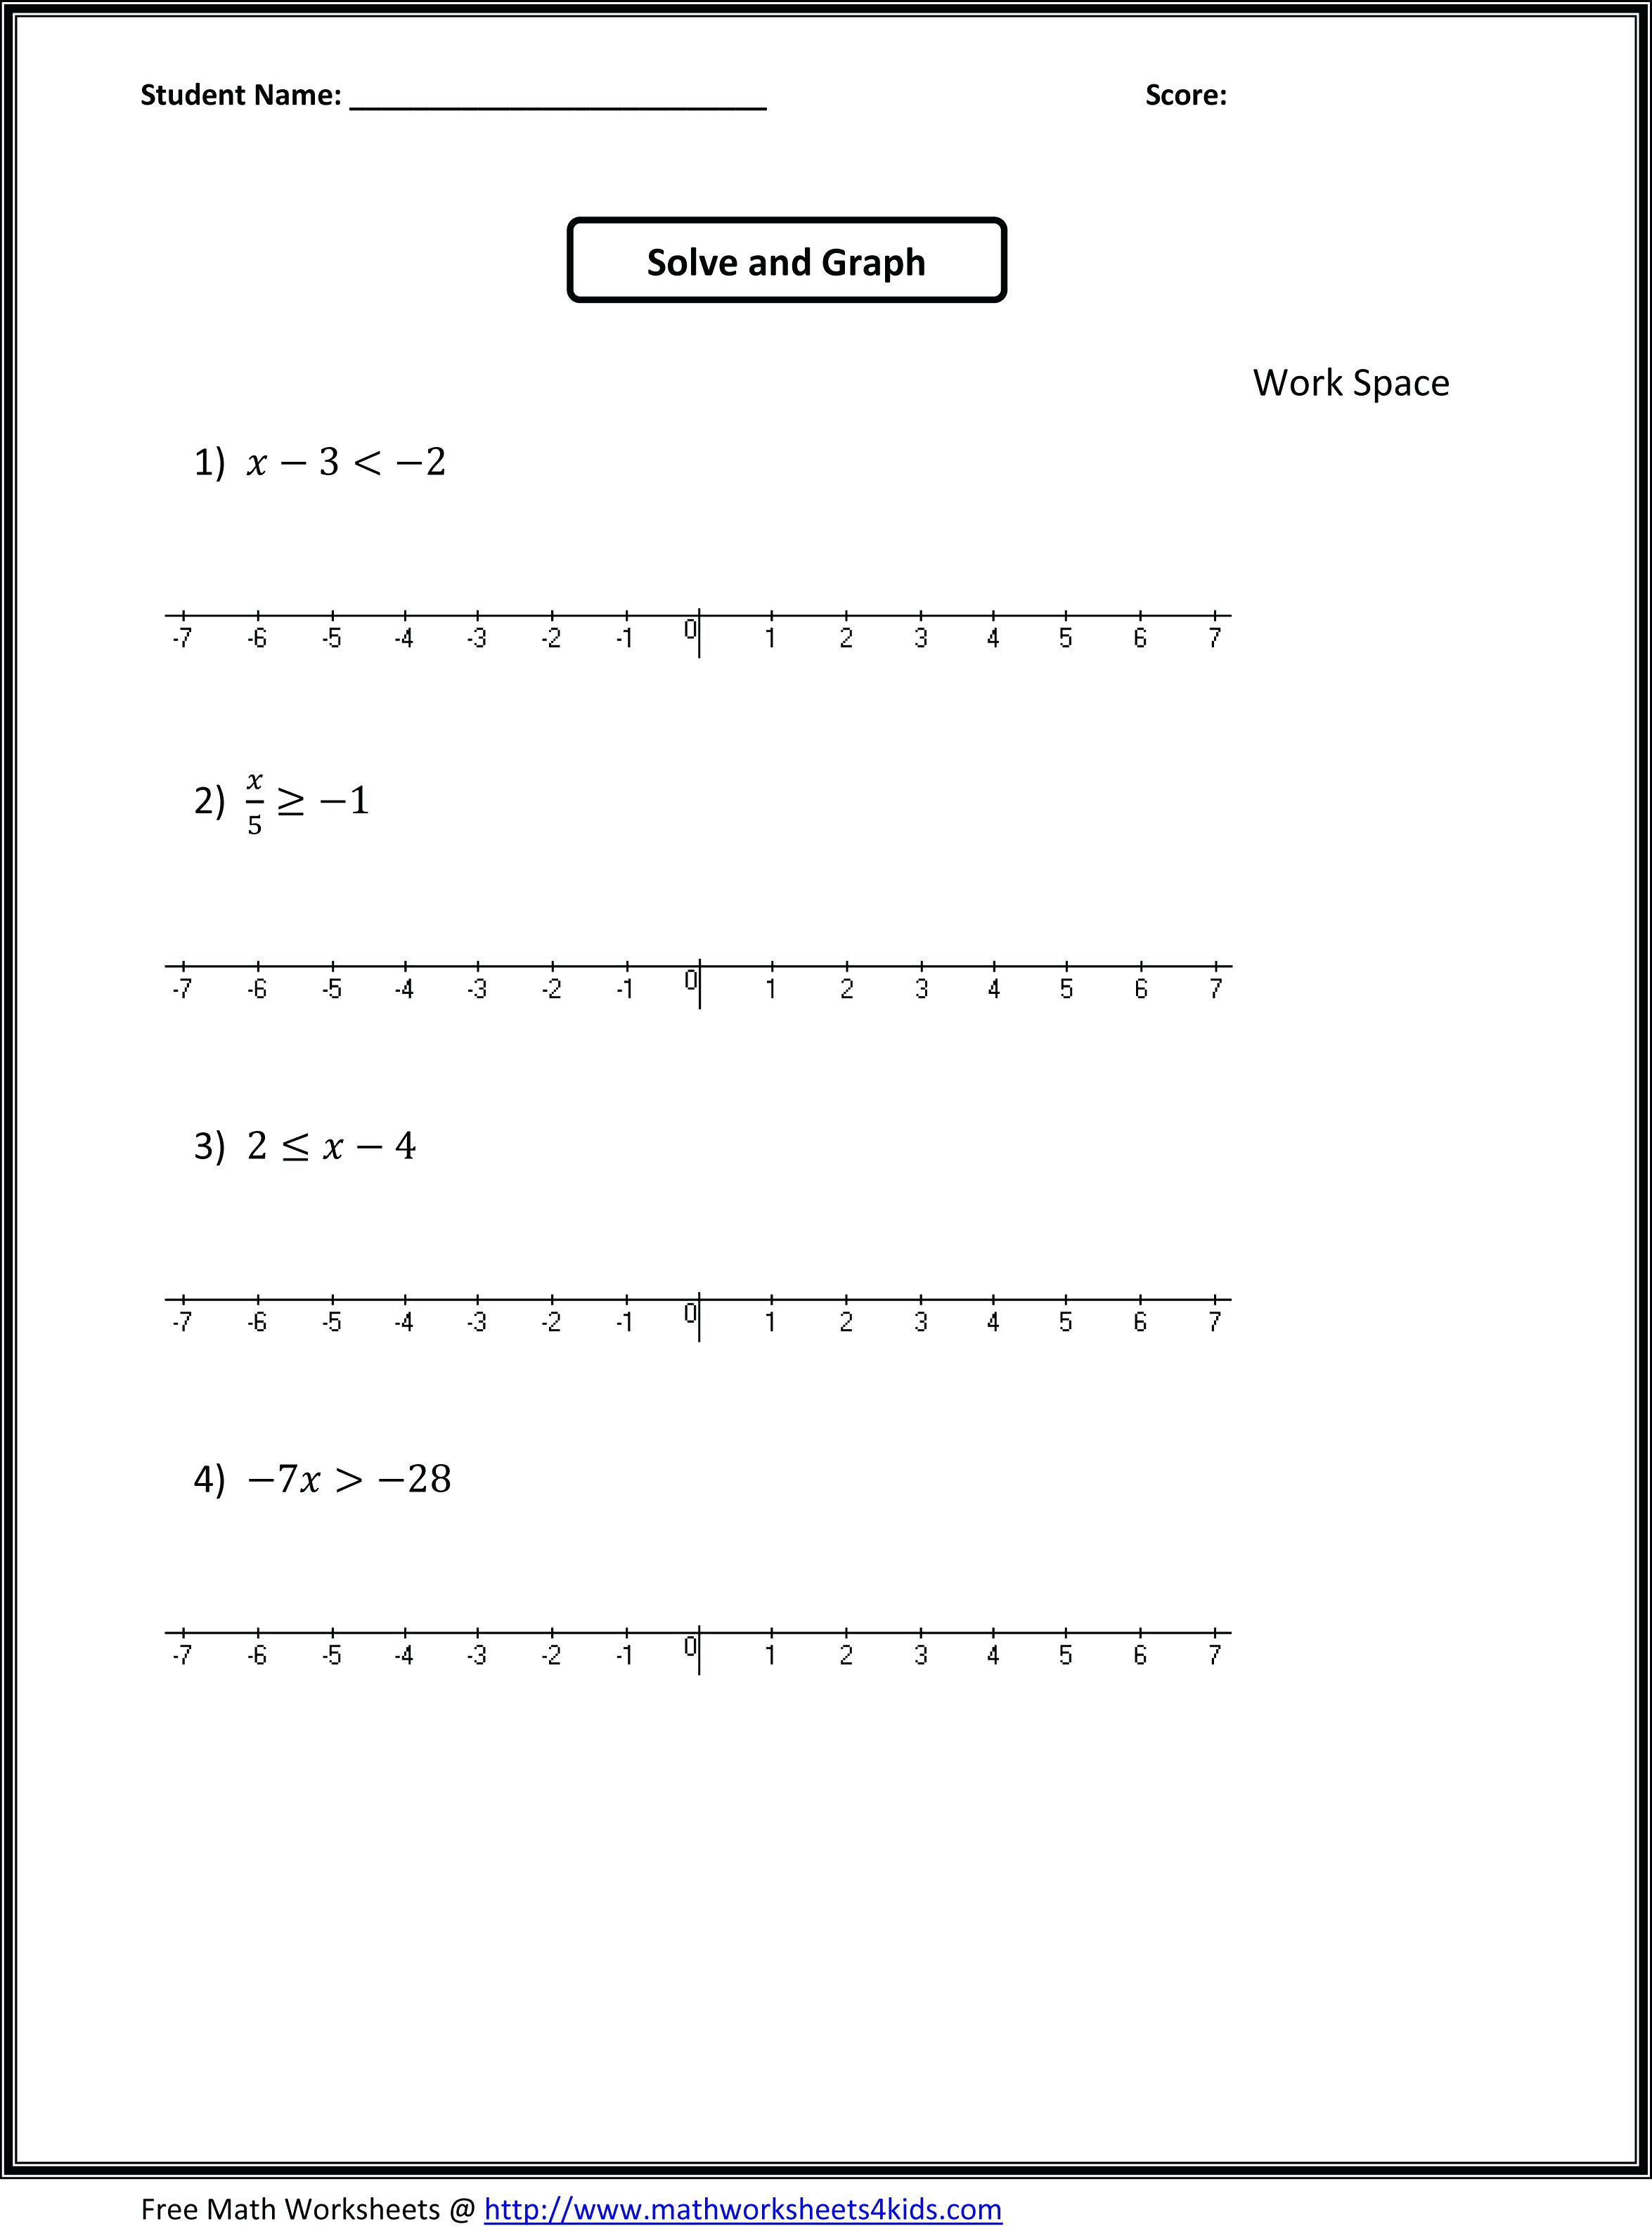 Algebra: 8Th Grade Math Worksheets Algebra Printable Worksheet For | 7Th Grade Math Worksheets Free Printable With Answers